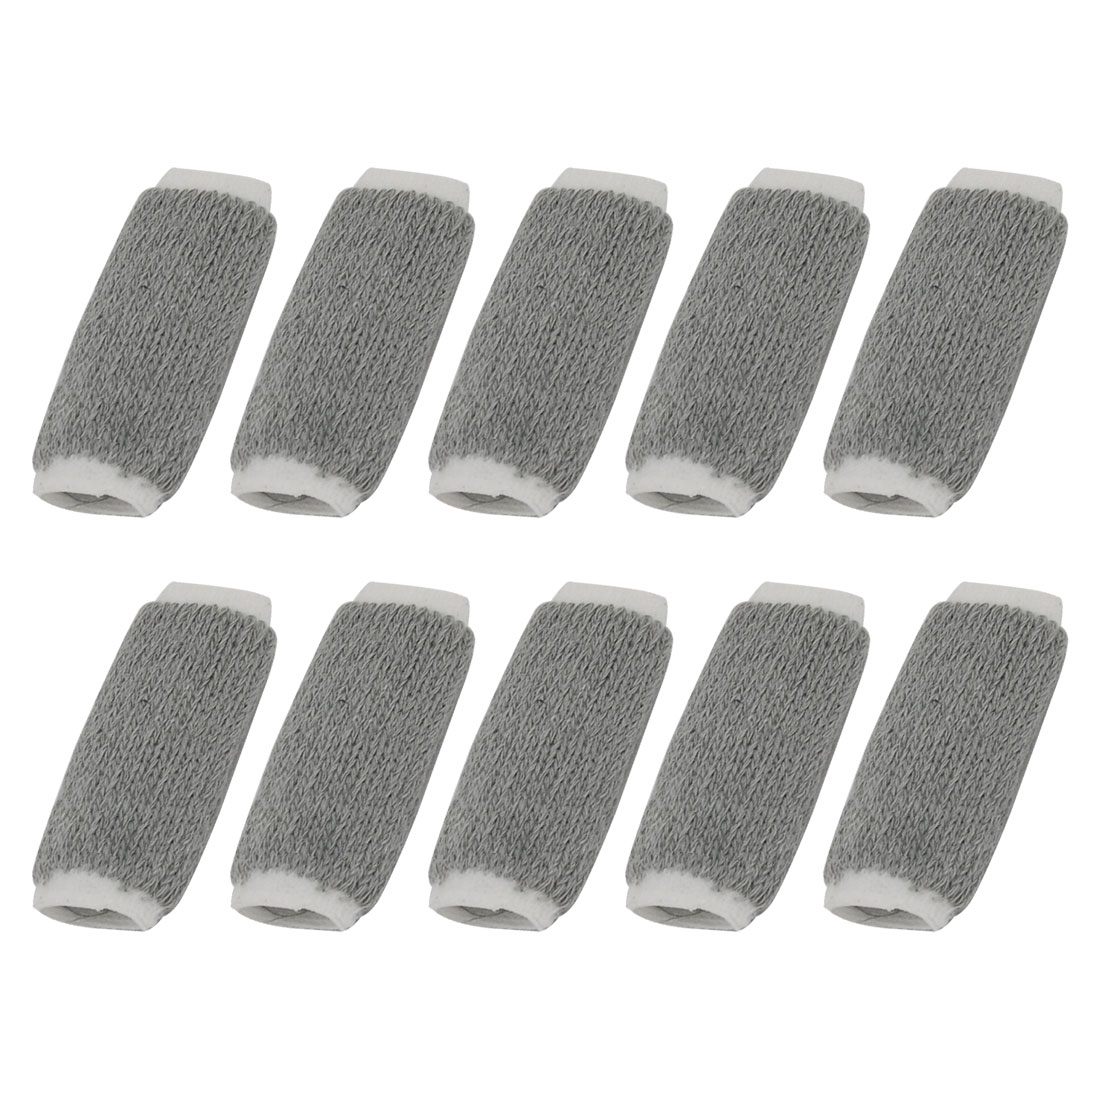 Sport Volleyball Basketball Fingerstall Sleeve Protection Bandage Cover Gray 10 PCS